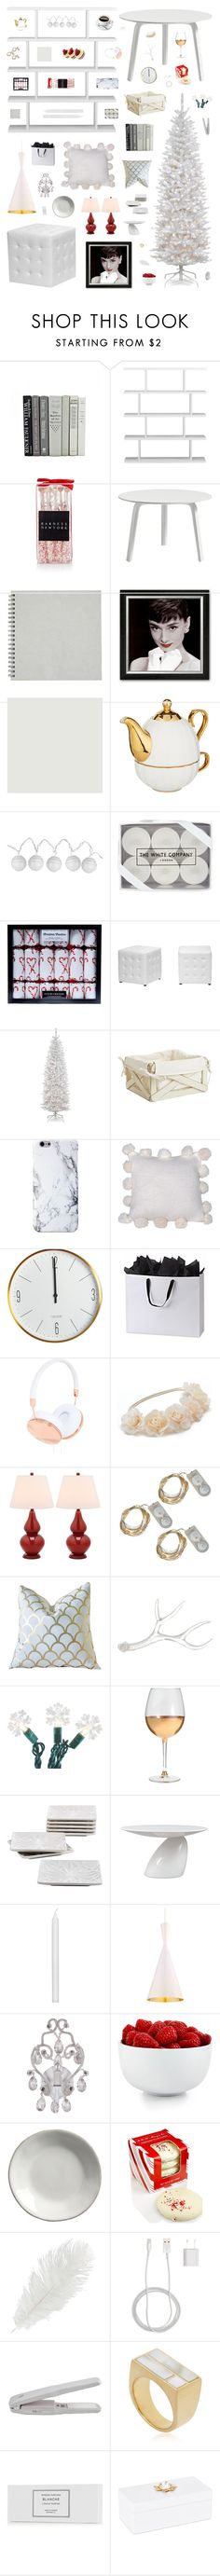 """""""Modern Retro & White Christmas Decor"""" by belenloperfido ❤ liked on Polyvore featuring interior, interiors, interior design, casa, home decor, interior decorating, CB2, FREDS at Barneys New York, HAY e Room Essentials"""